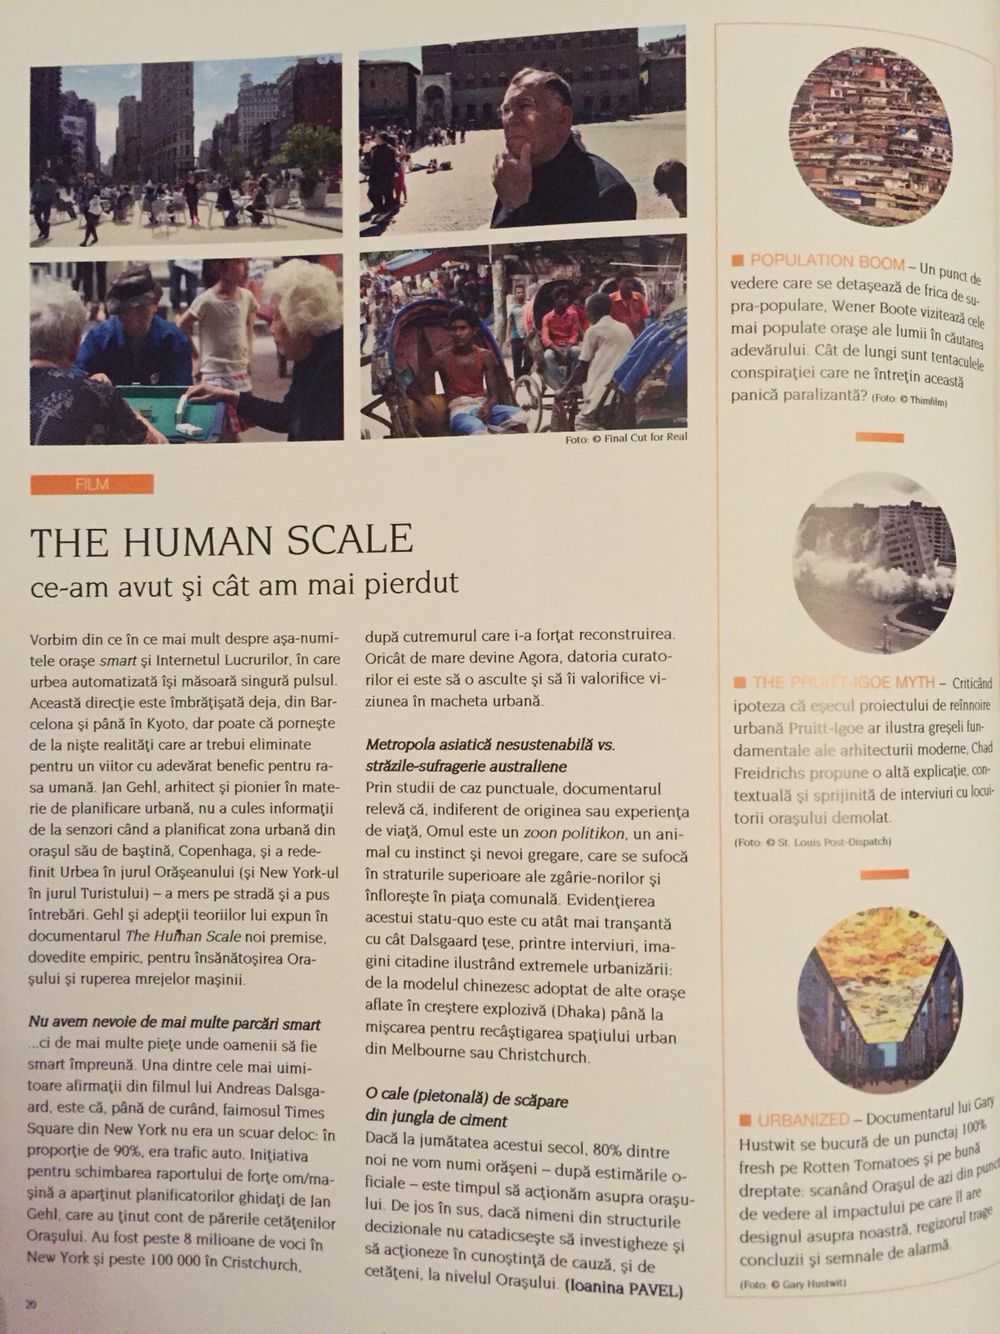 The Human Scale by Jan Gehl in Igloo, May issue (Ro) #film